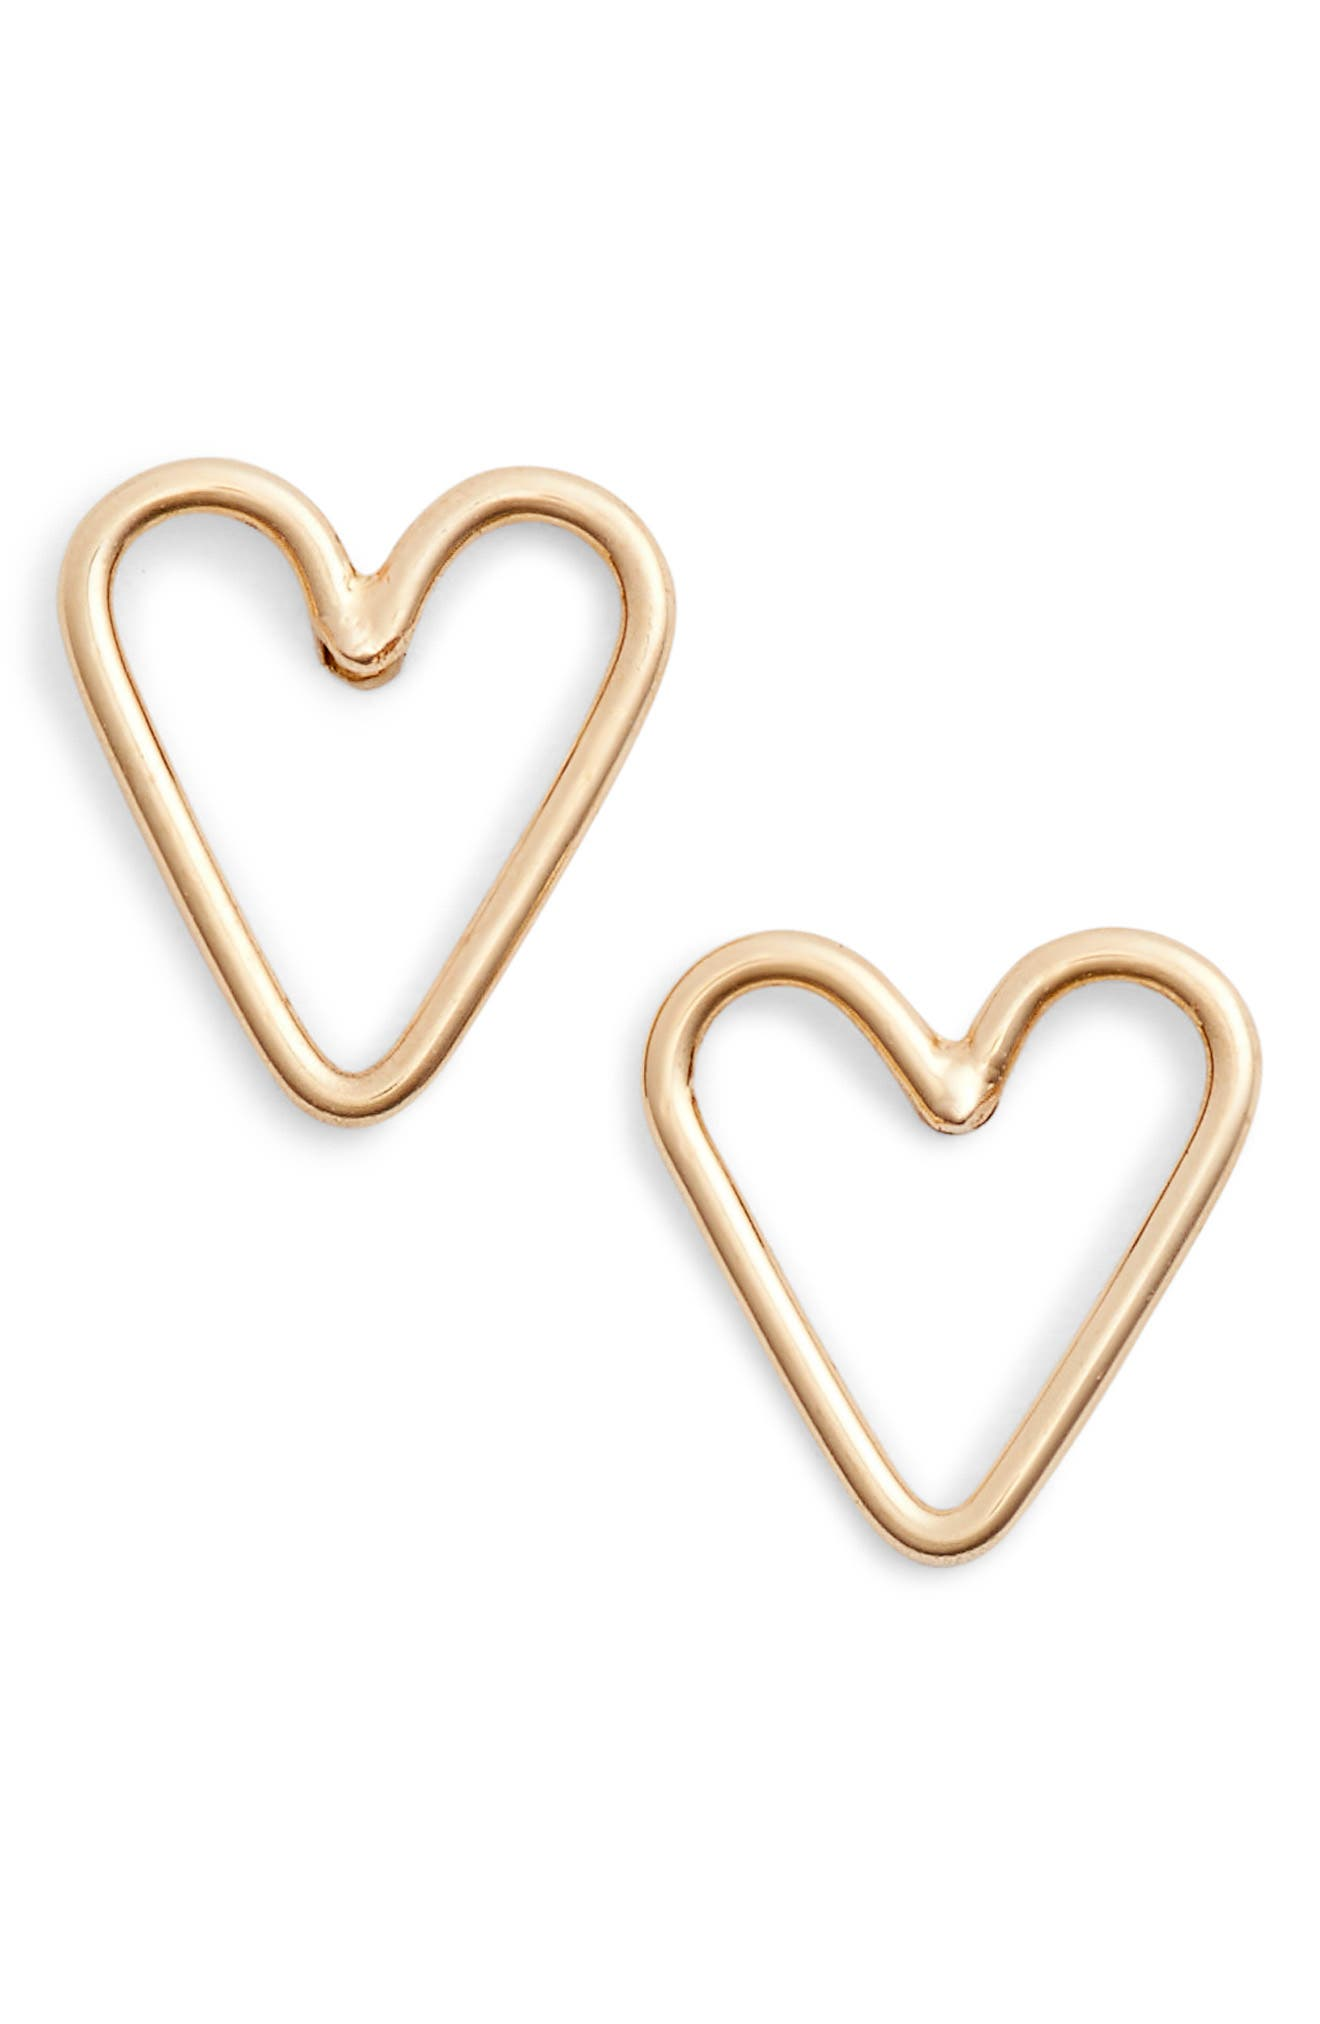 Open Heart Stud Earrings,                             Main thumbnail 1, color,                             710